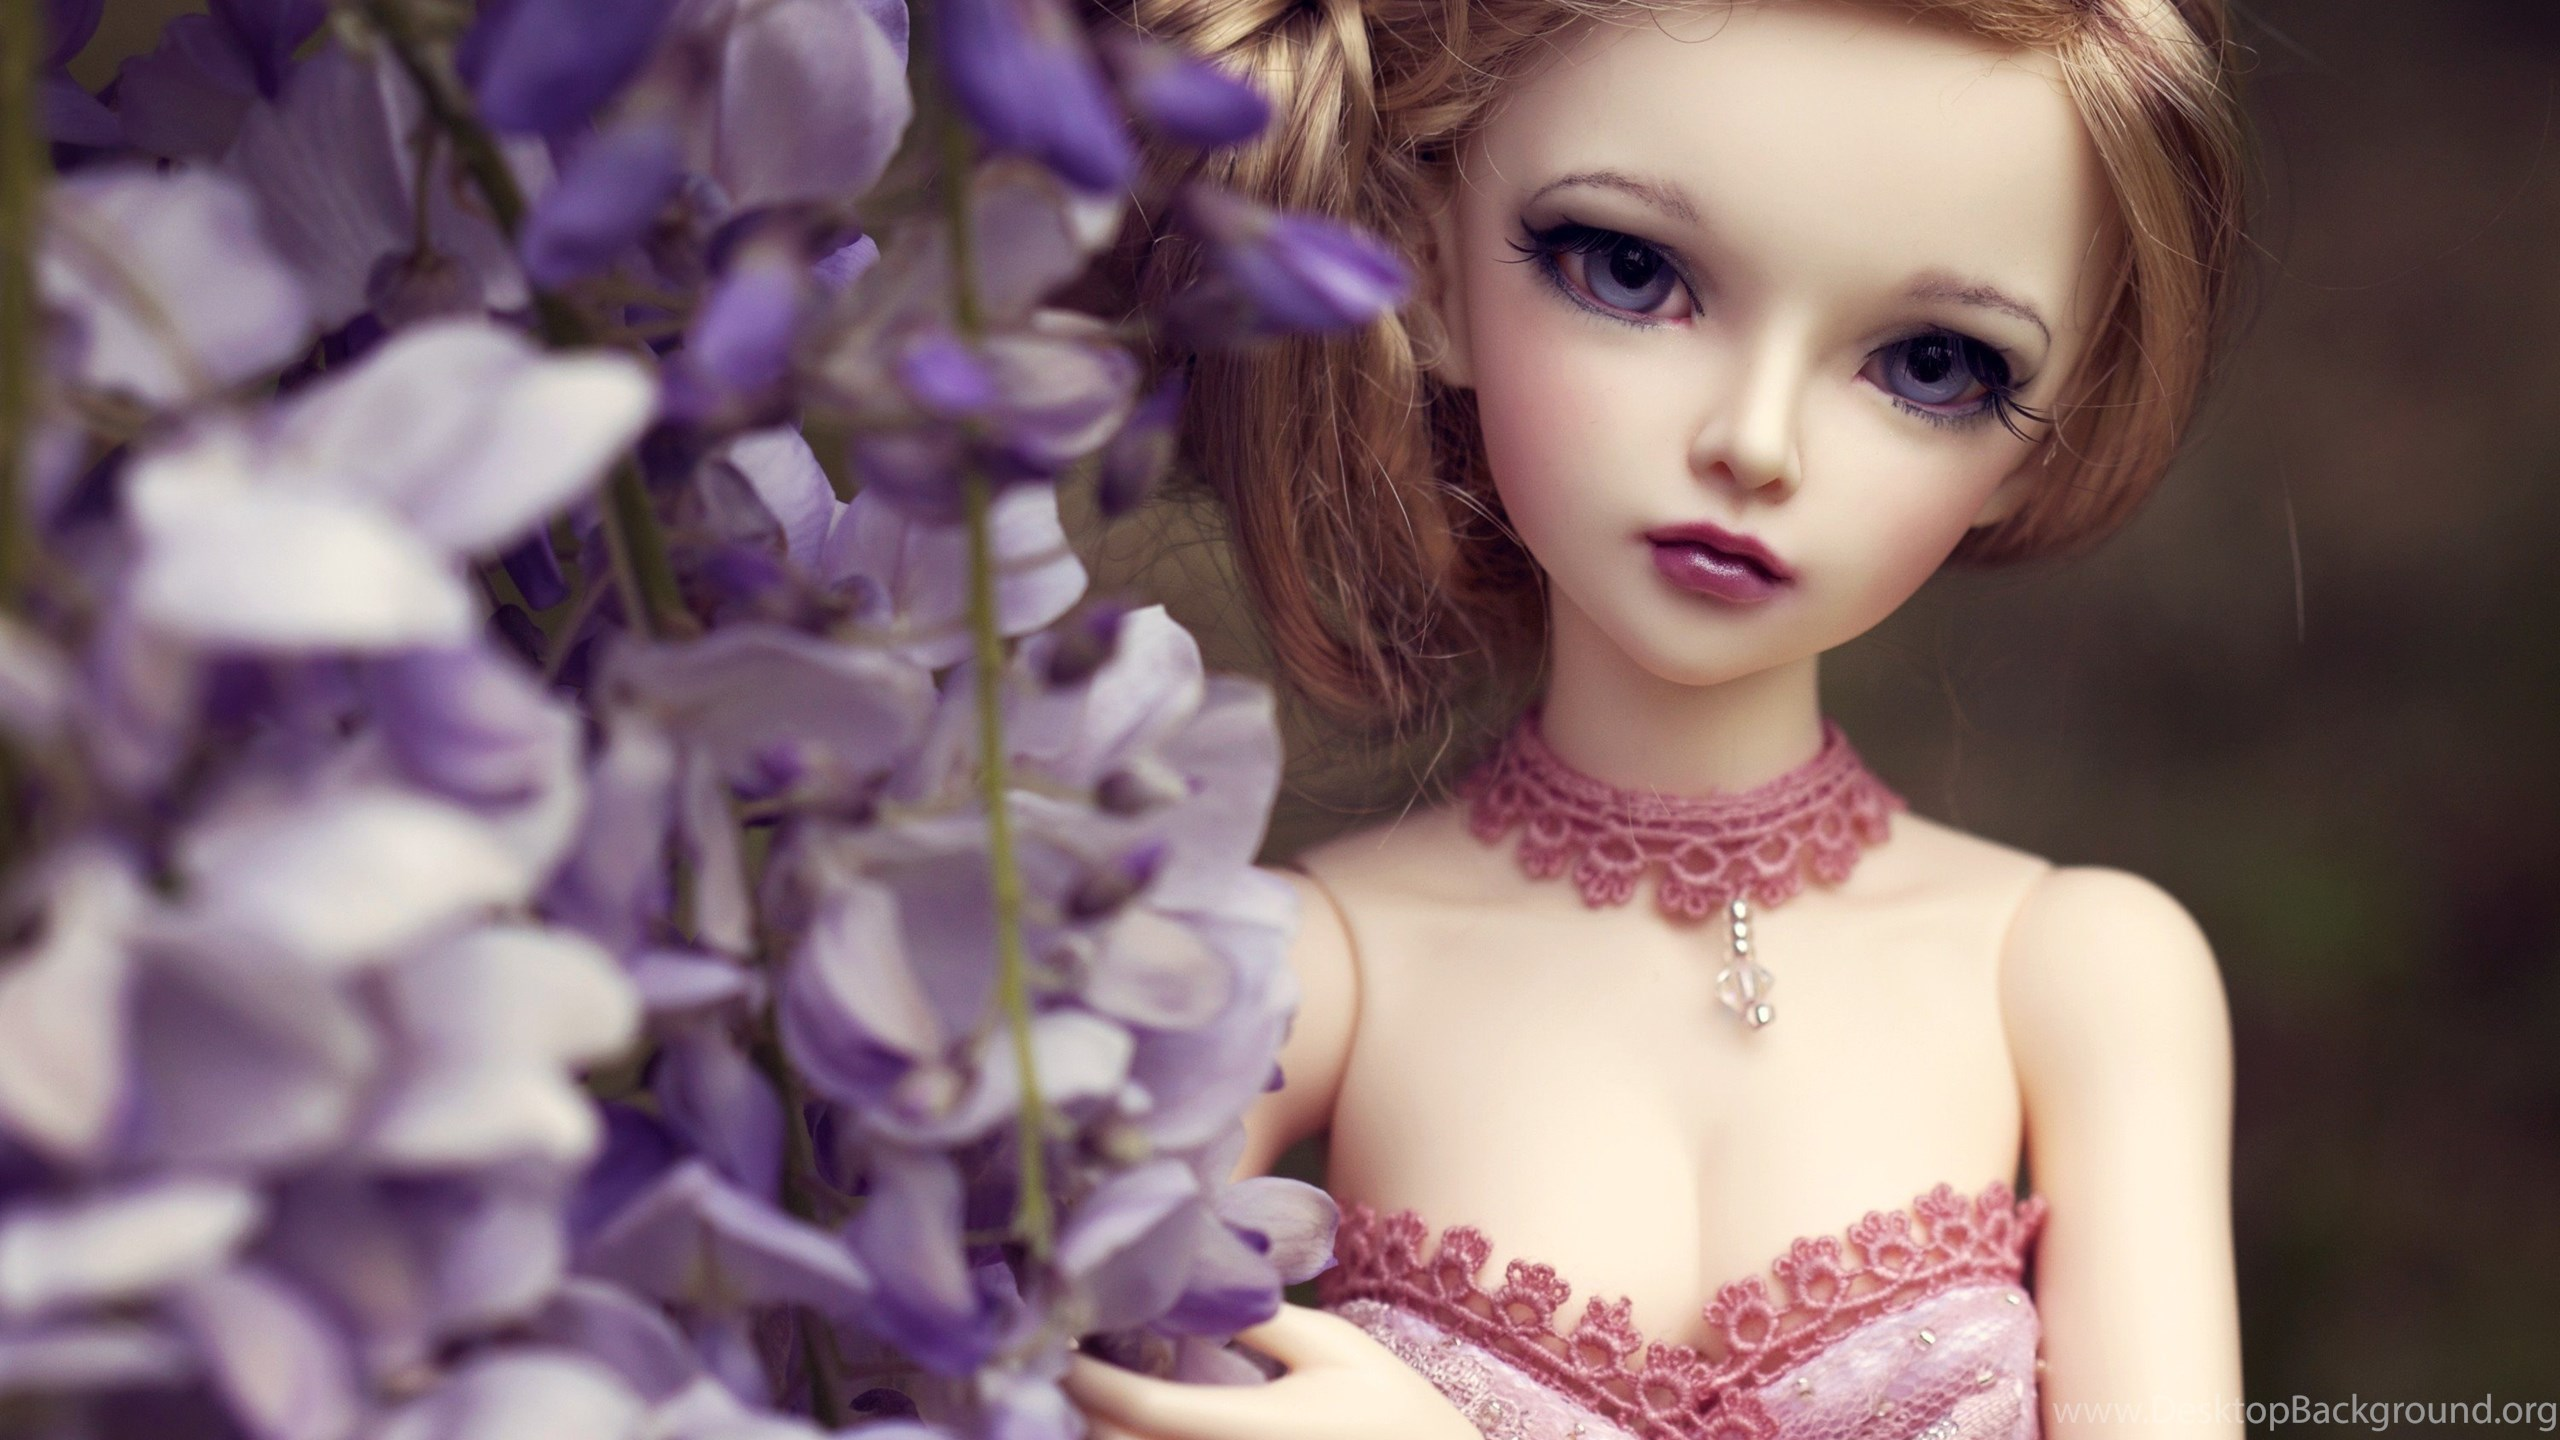 Doll Full Hd Alluring Wallpapers Free Hd Wallpapers Download Doll Desktop Background